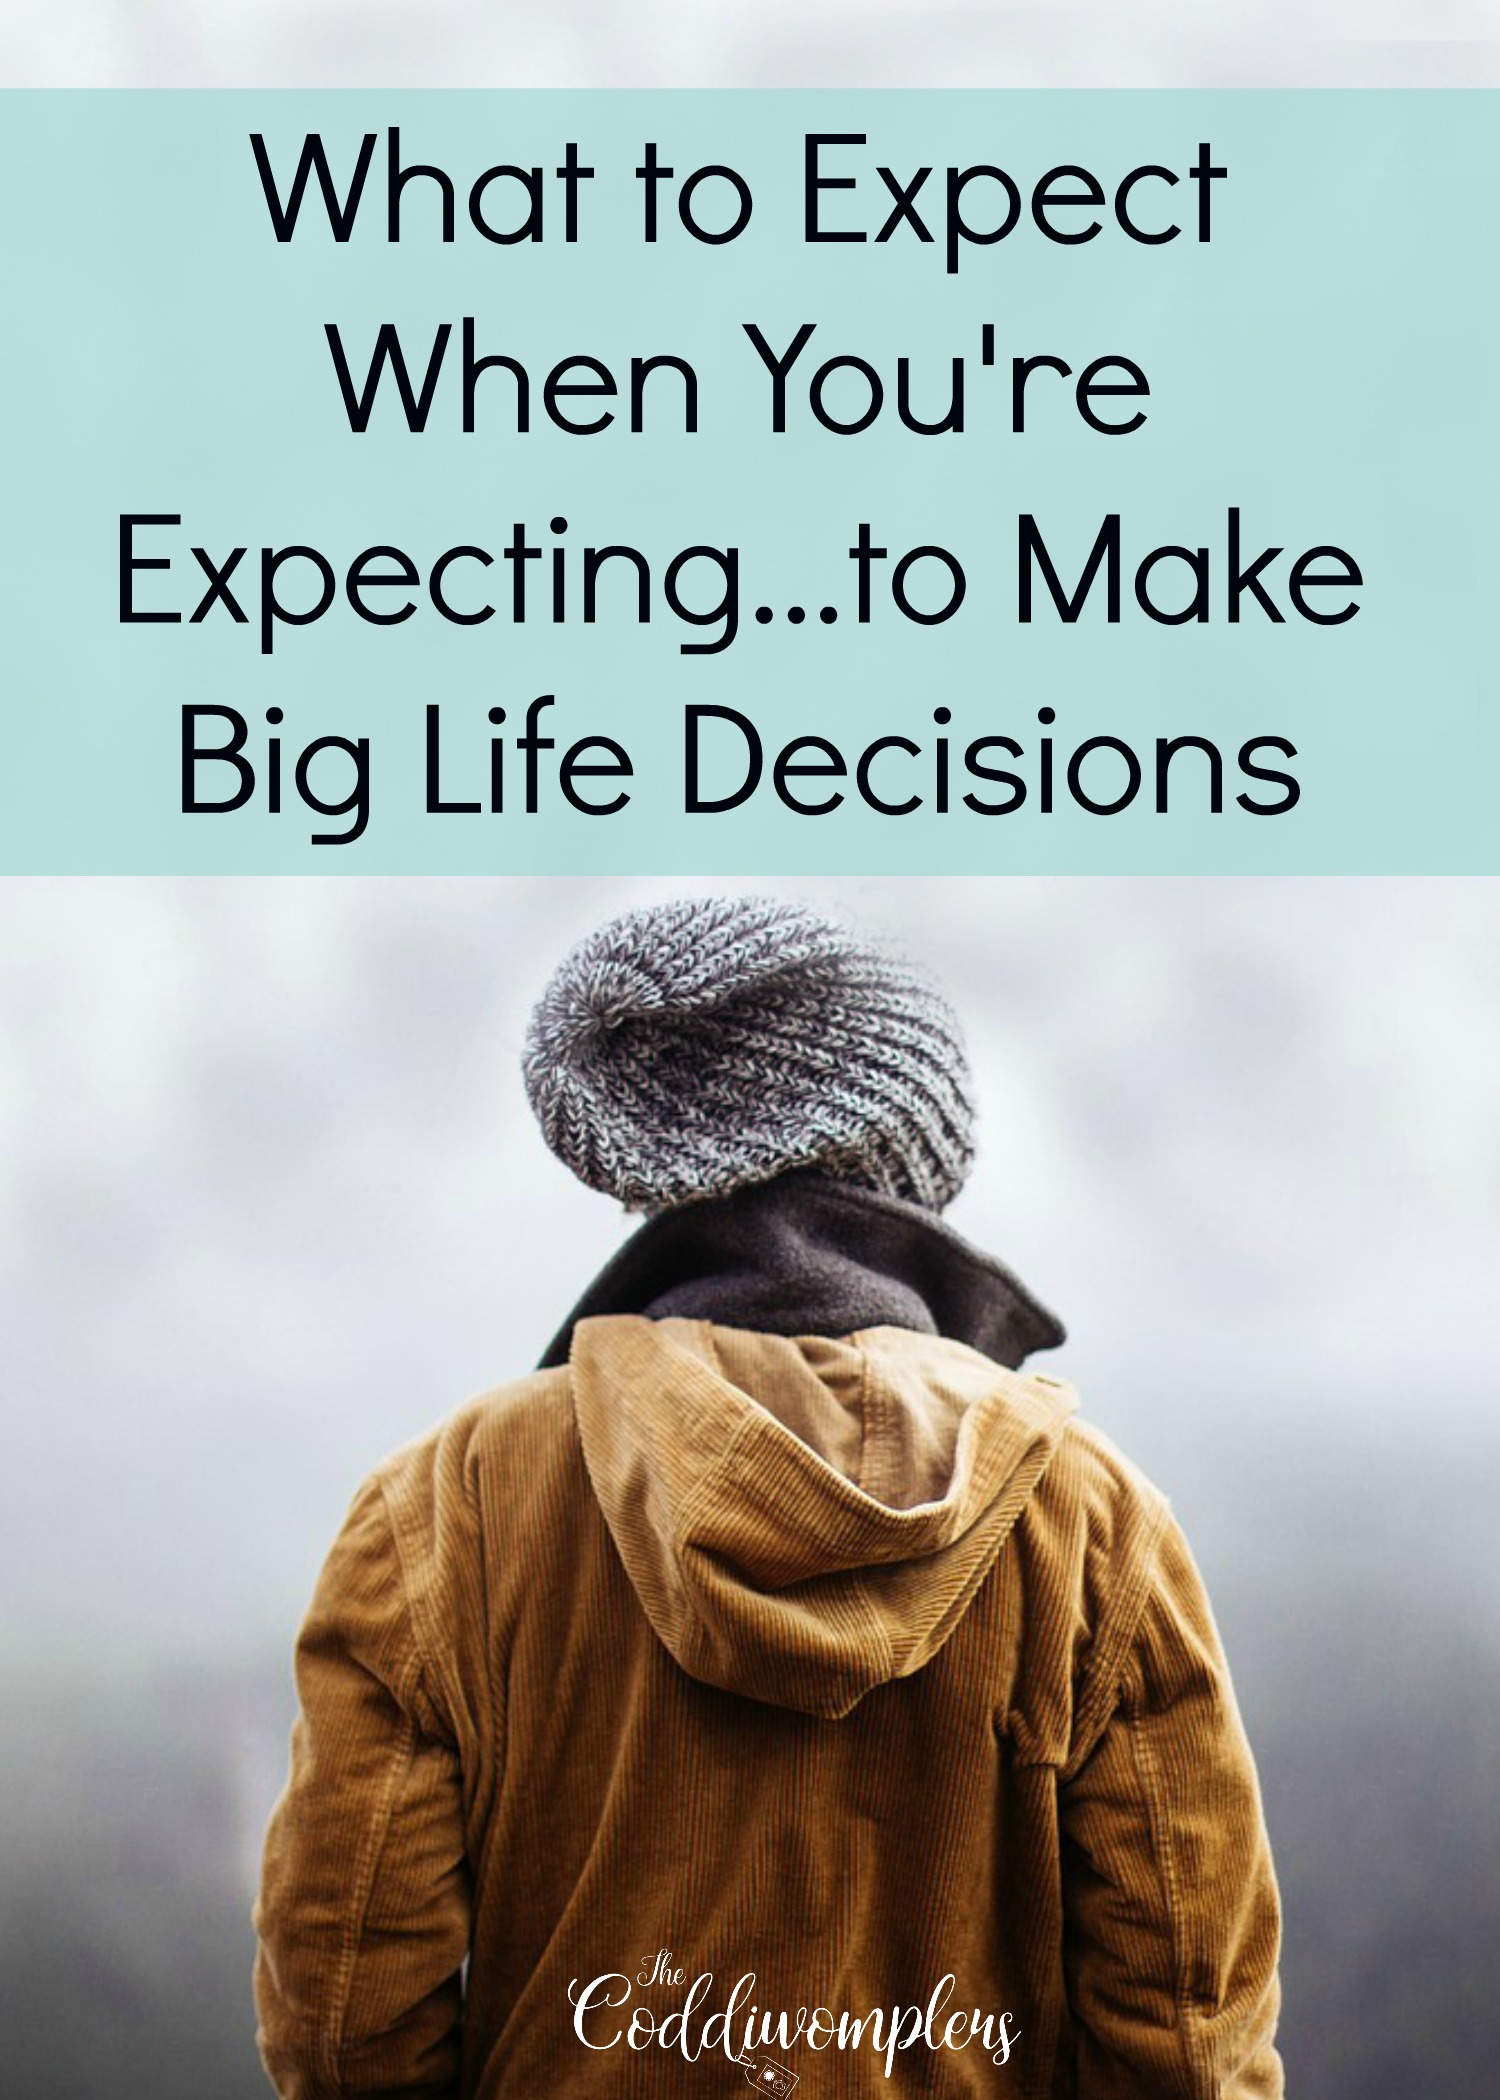 what to expect when you're expecting...in making big life decisions